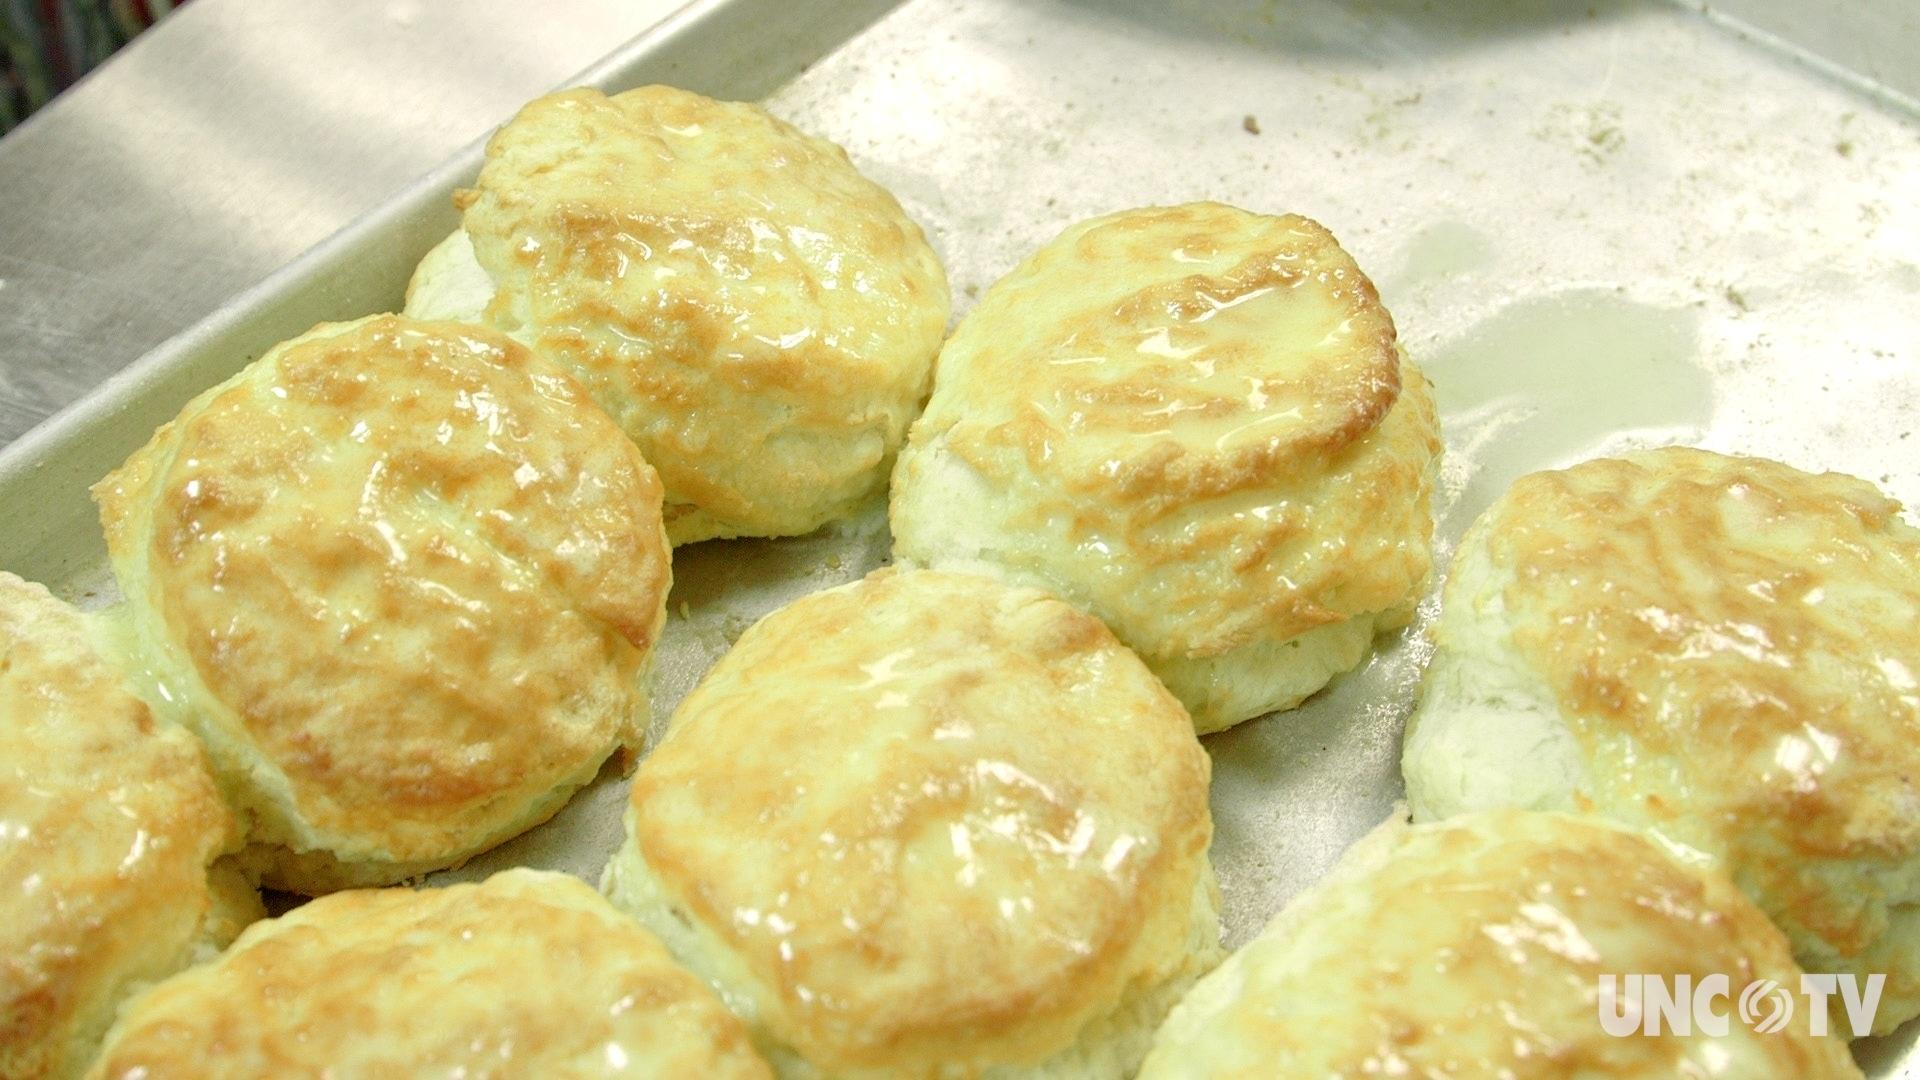 Video Sunrise Biscuit Kitchen My Home Nc Watch My Home Nc Online The University Of North